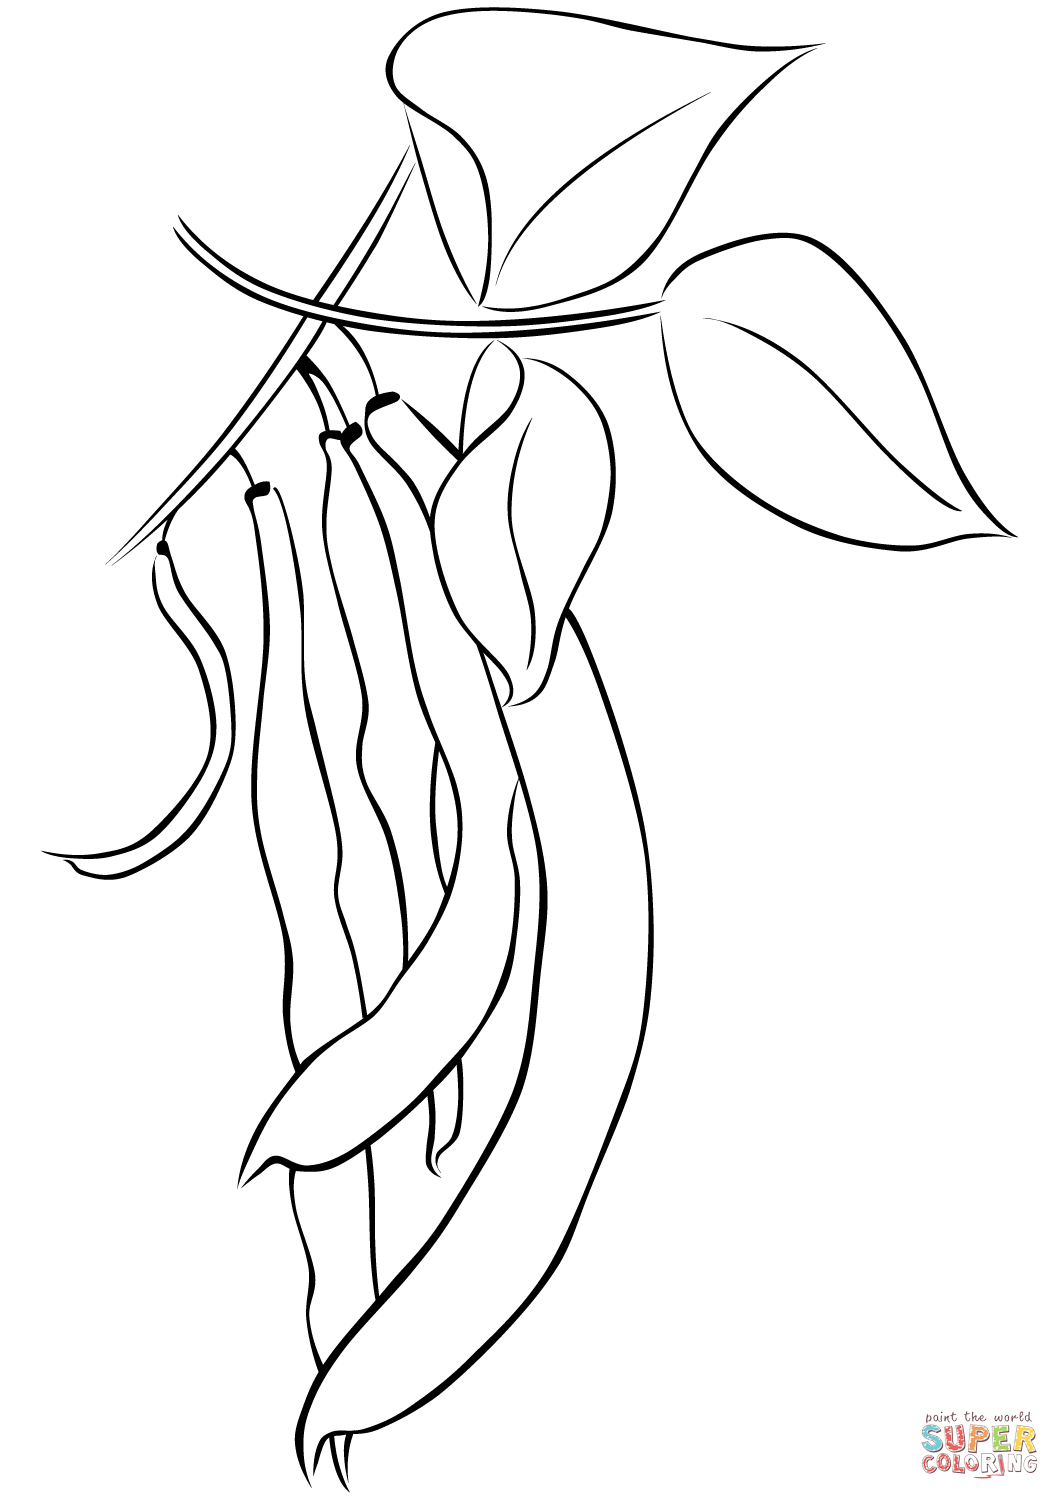 Beans Coloring Page